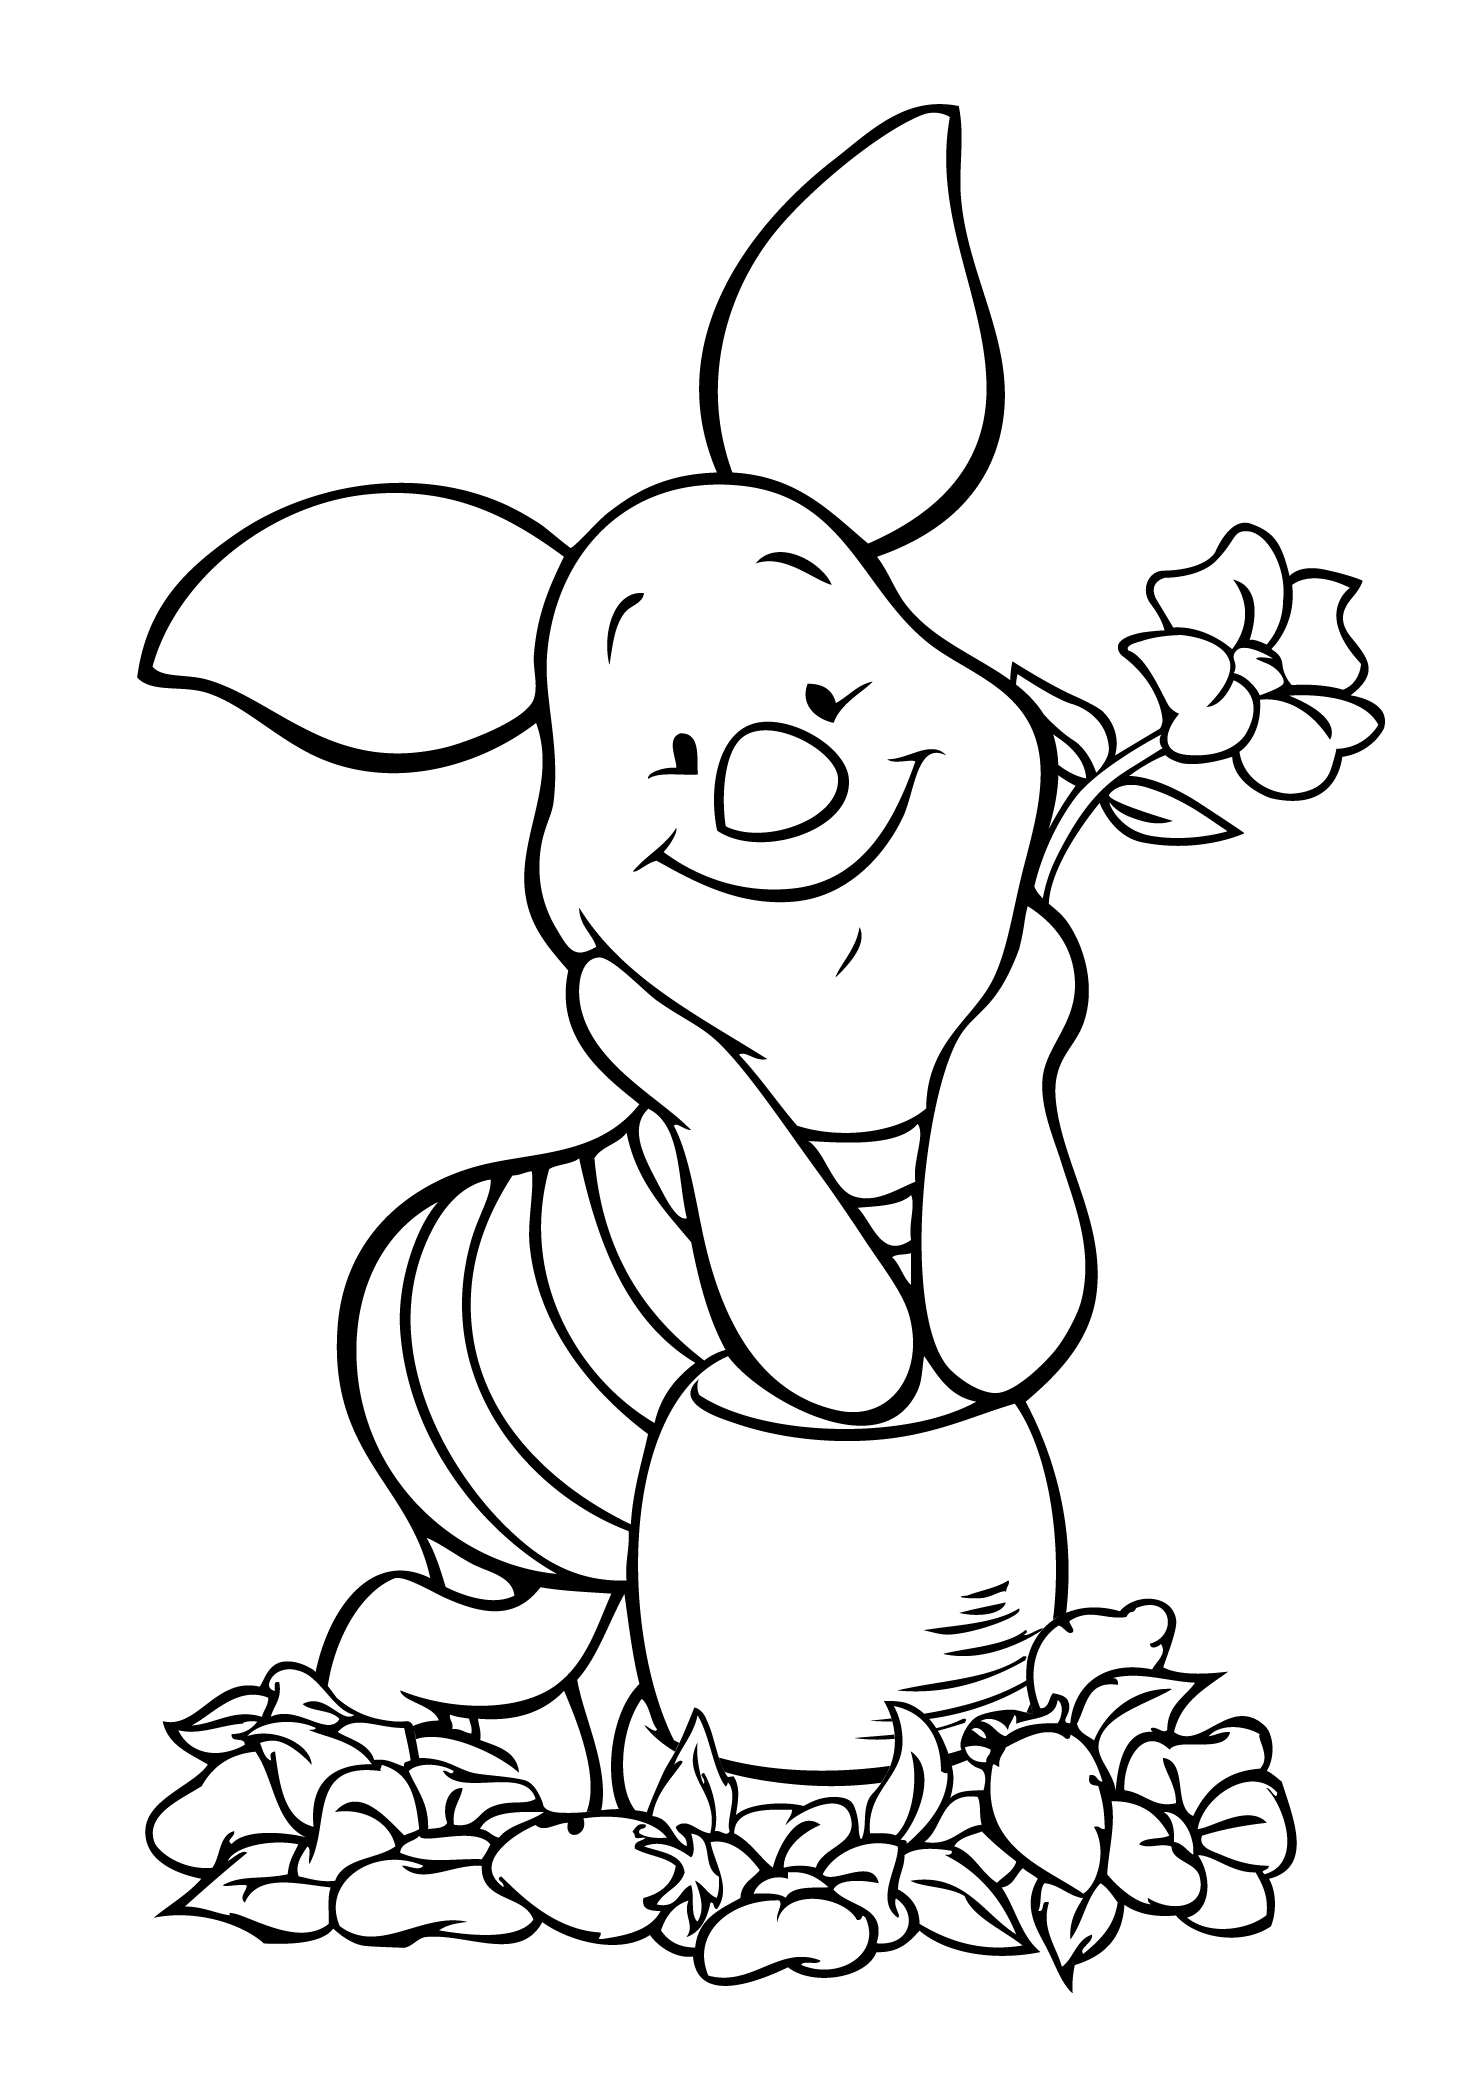 piglet coloring pages - photo#6